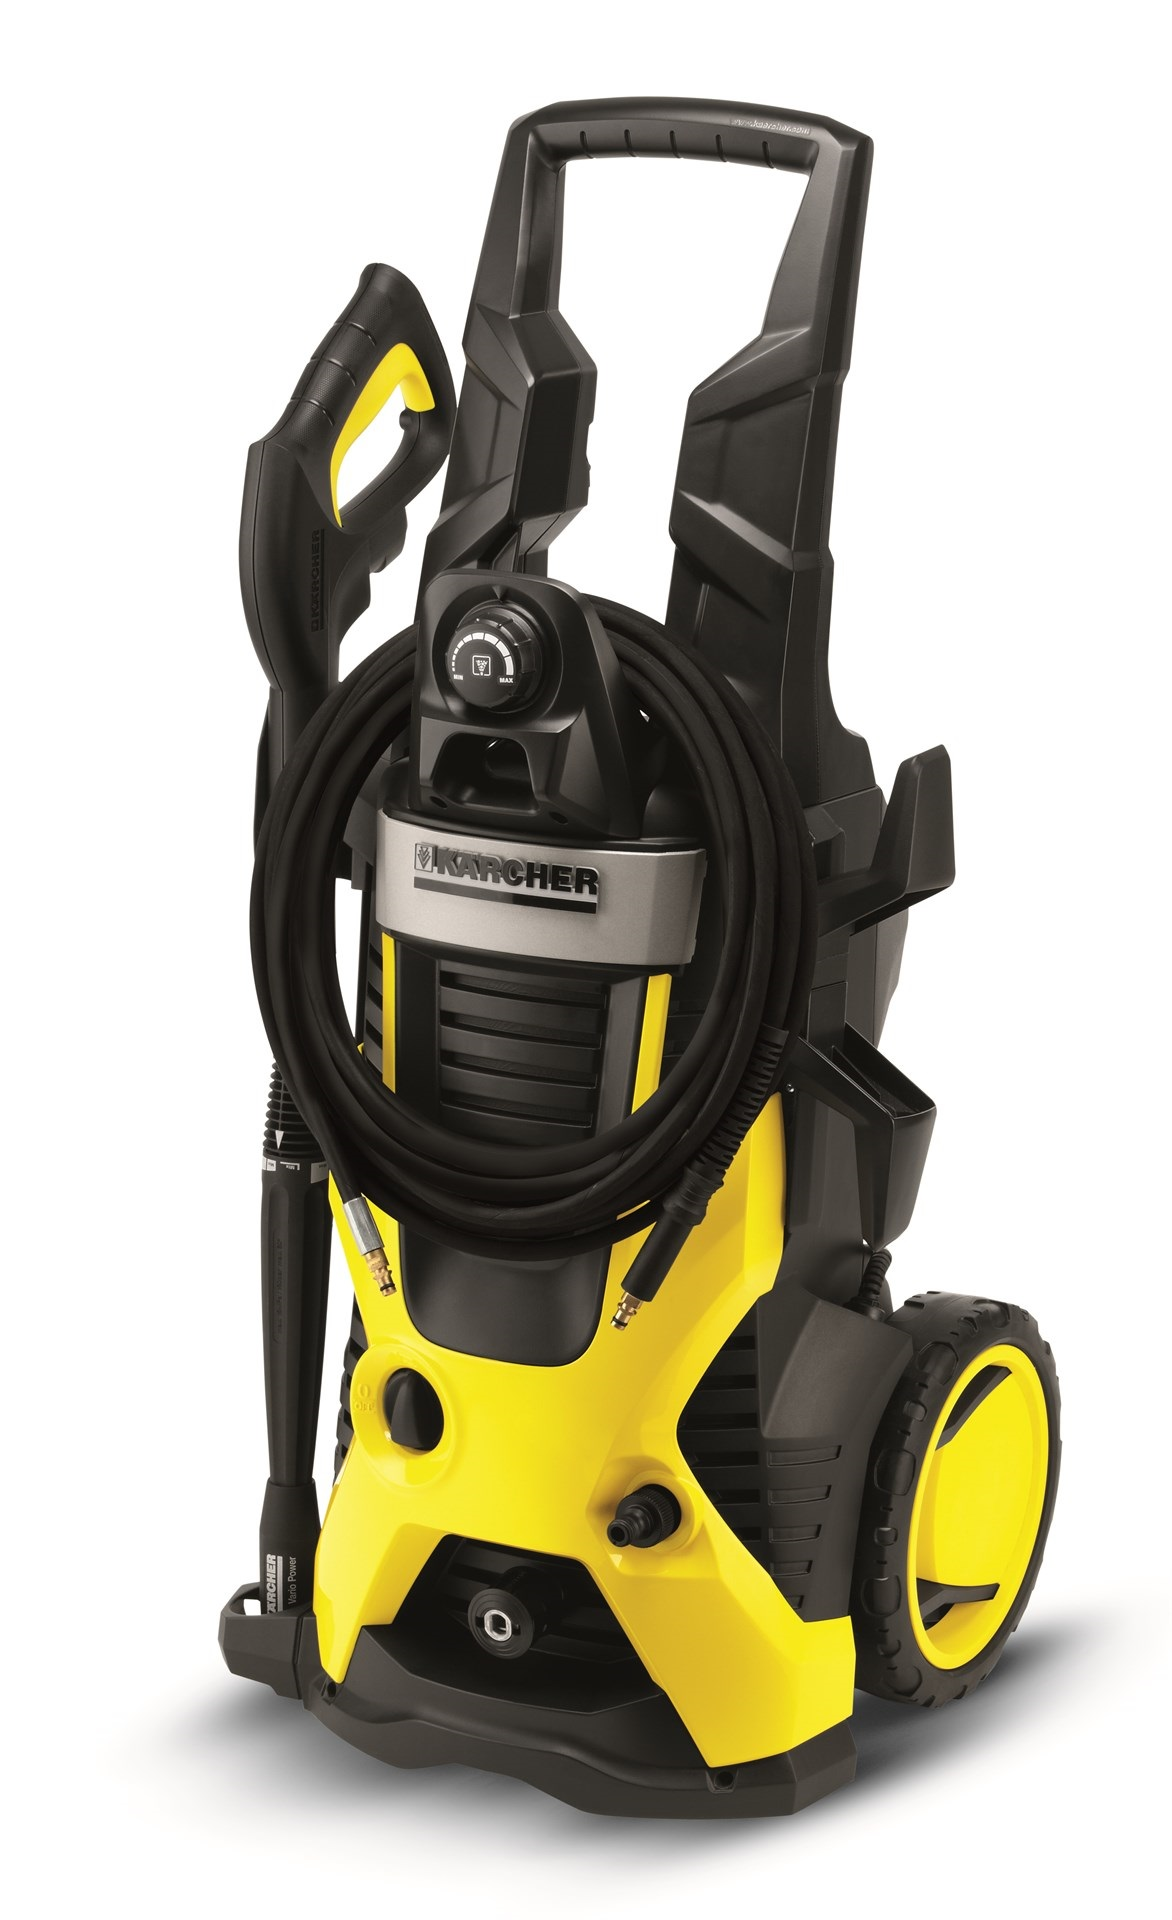 karcher k7 high pressure cleaner dealsdealsdeals. Black Bedroom Furniture Sets. Home Design Ideas